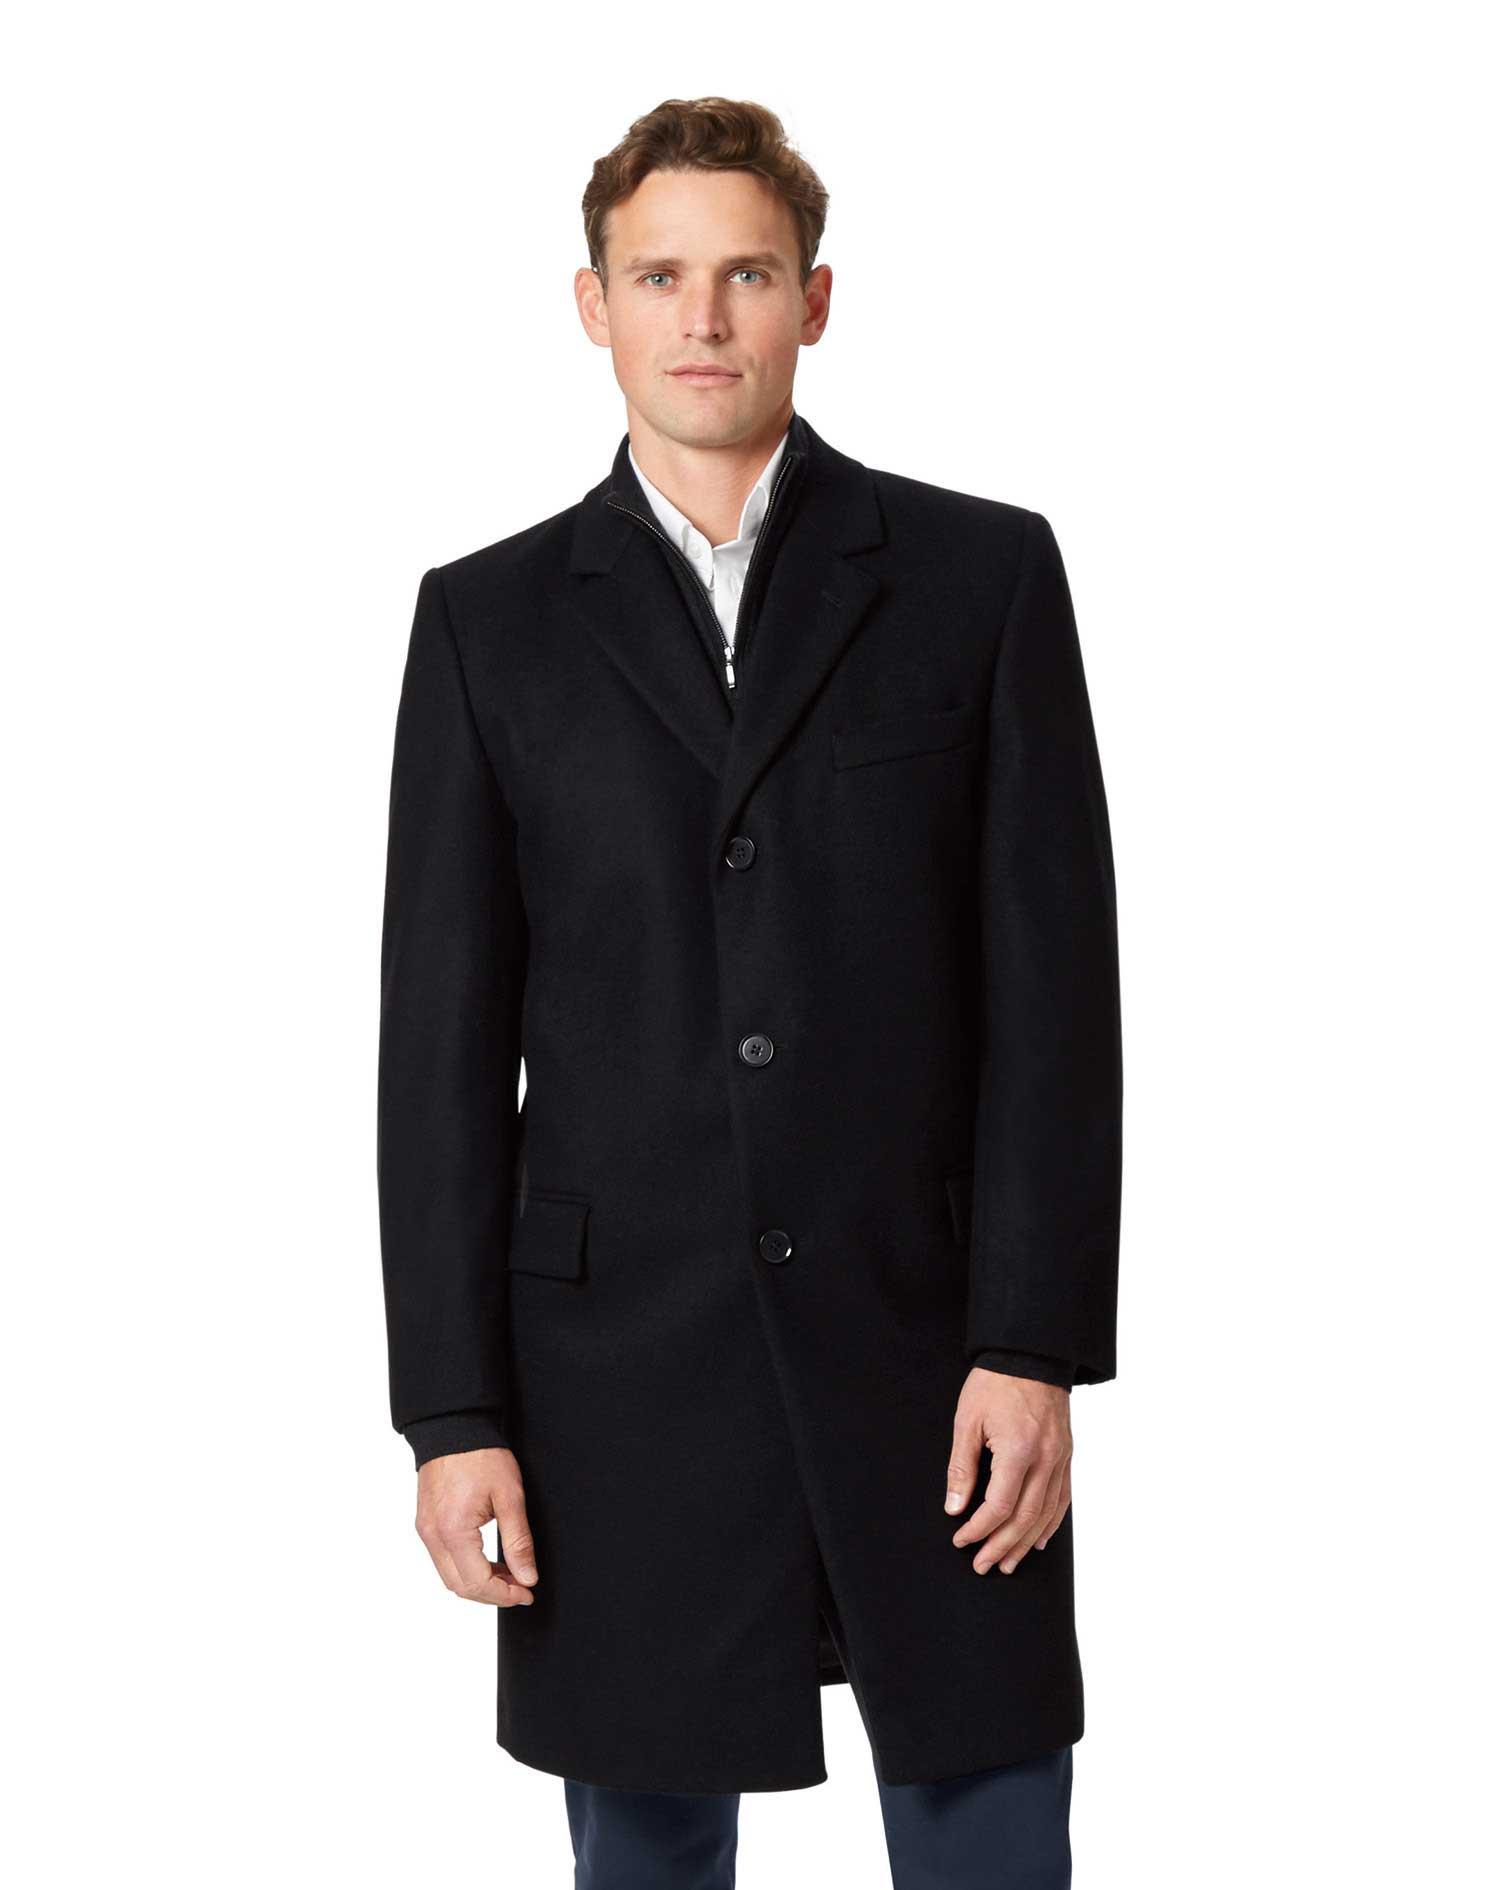 50s Men's Jackets| Greaser Jackets, Leather, Bomber, Gaberdine Black Wool and Cashmere Overcoat Size 48 Regular by Charles Tyrwhitt £249.95 AT vintagedancer.com